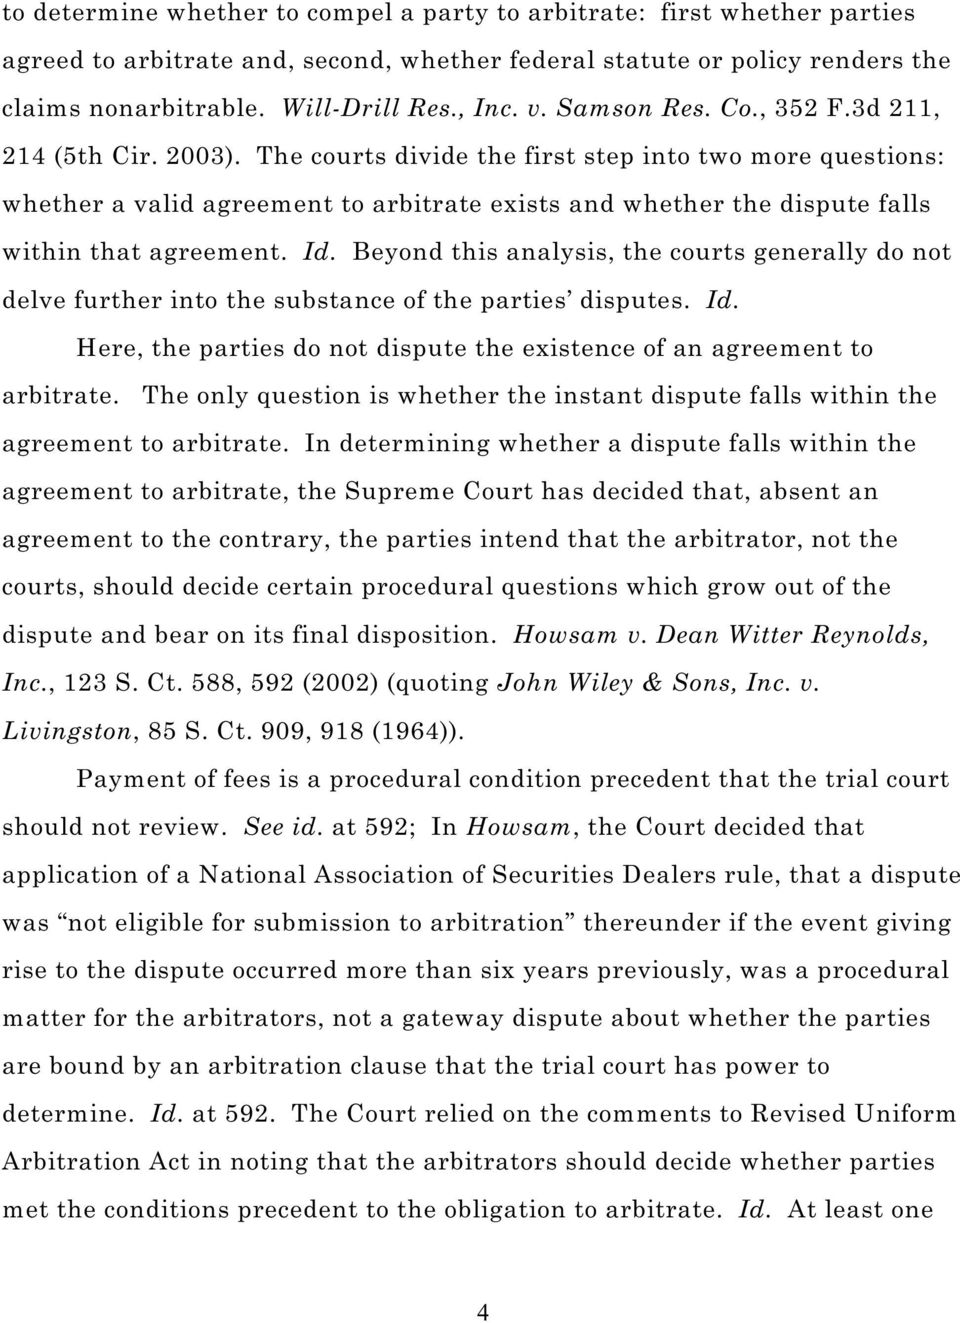 The courts divide the first step into two more questions: whether a valid agreement to arbitrate exists and whether the dispute falls within that agreement. Id.